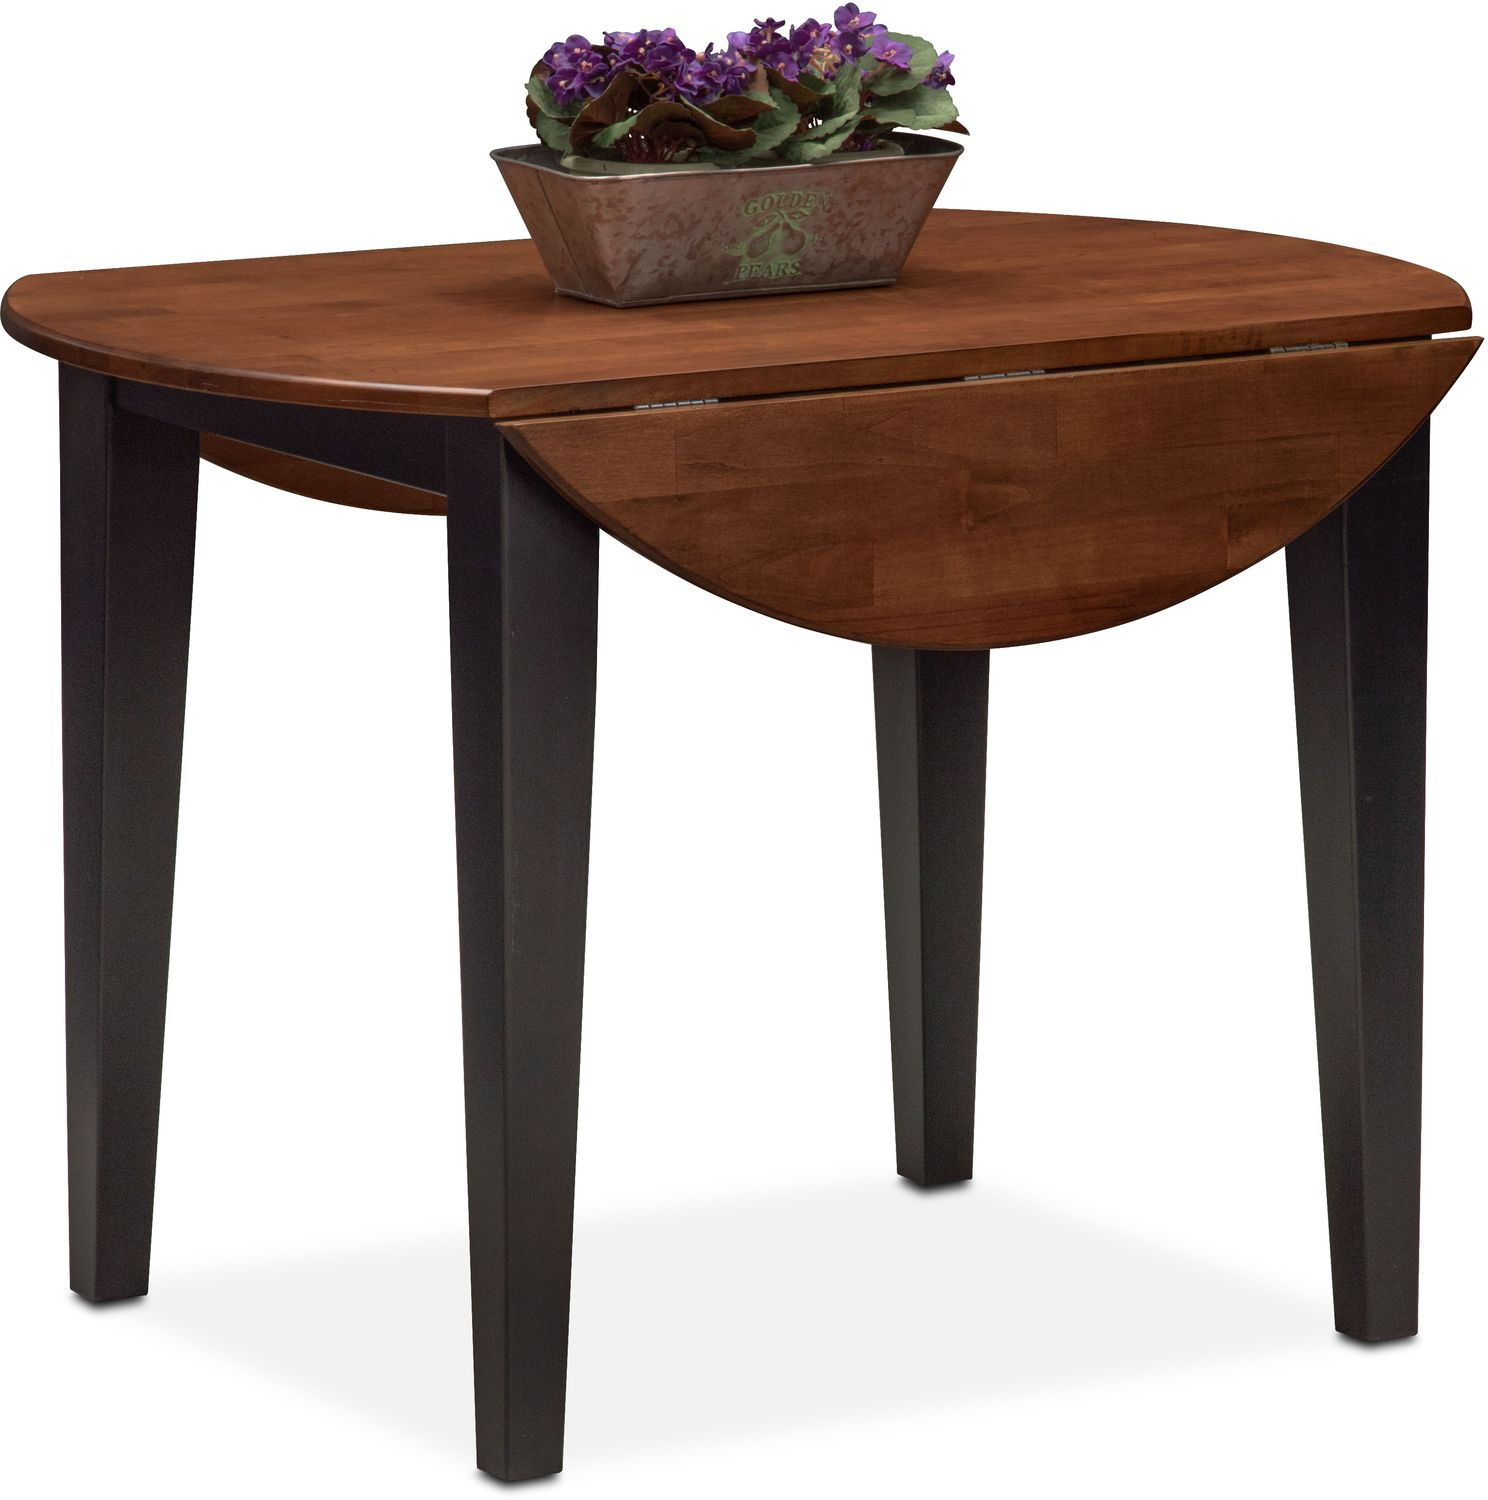 Nantucket Drop Leaf Table Black And Cherry American Signature Furniture